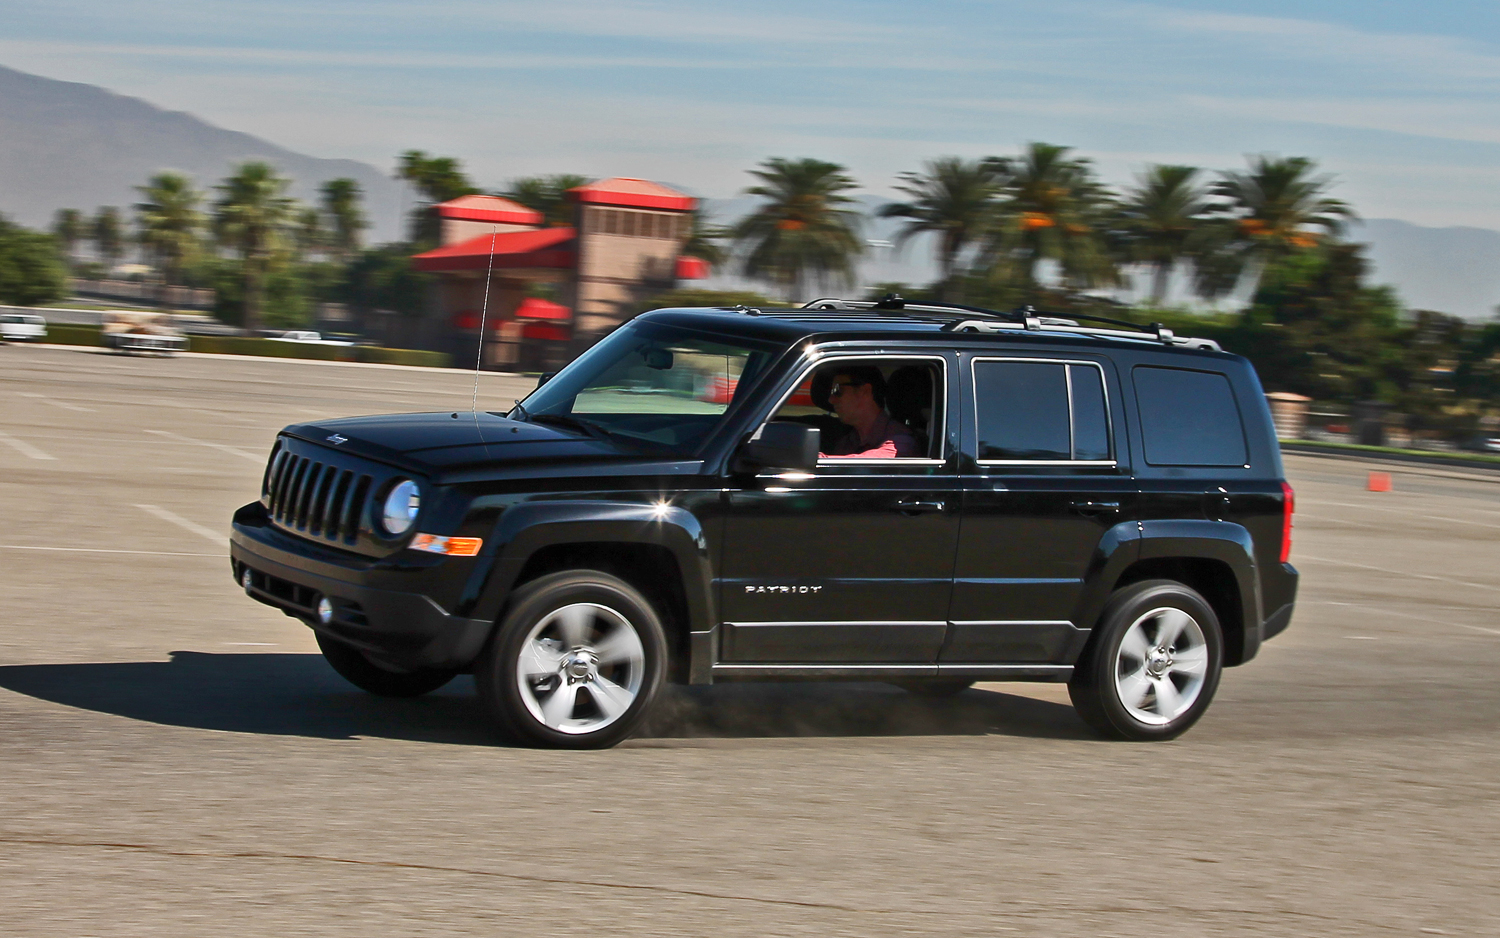 2013 Jeep Patriot #21